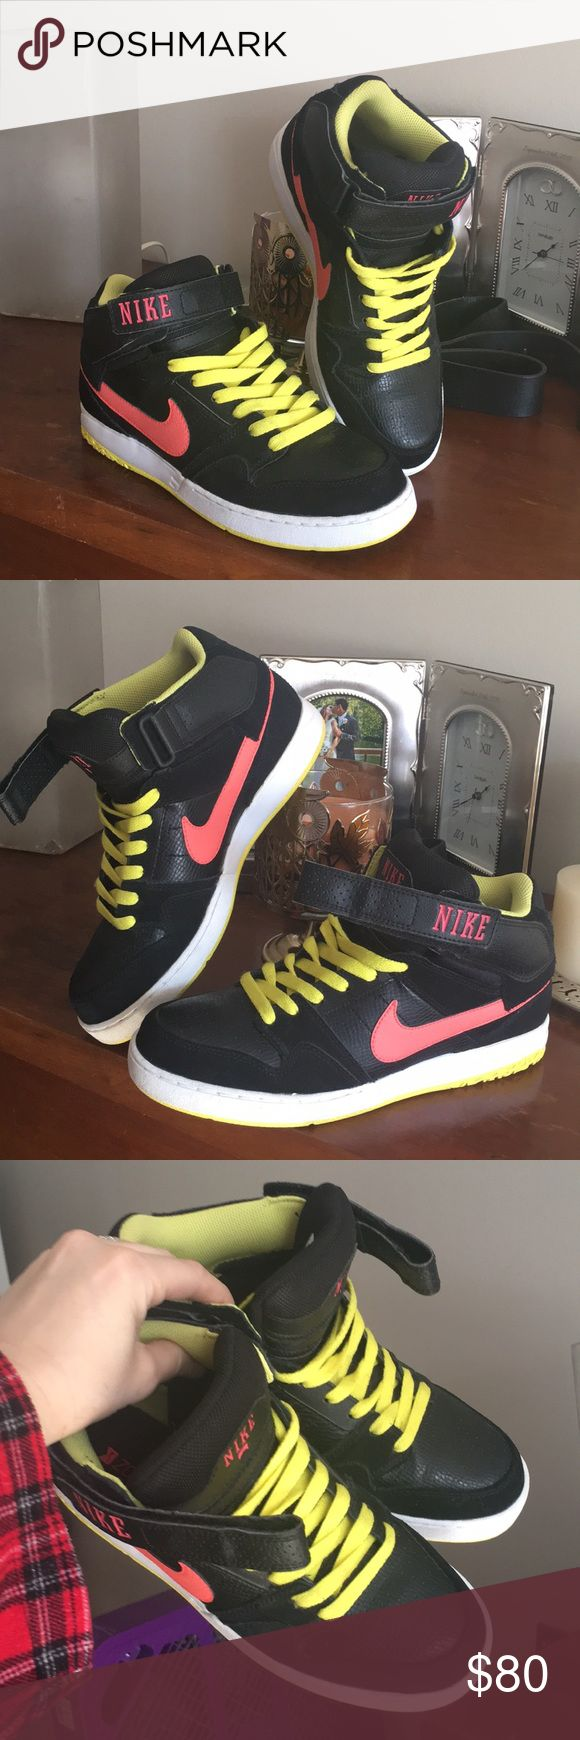 Black w/ Neon green & pink, Nike Mid Tops. 👌🏼 NWOT👌🏼👌🏼👌🏼 Size 8 in men's. 9.5 in women's. Bought thinking they were a women's size 8 by mistake 😩 Tried to wear them once, but kept falling off my feet! They're super cute! Someone should be showing them off! They've just been sitting in storage🙄 #Neon #Nike #Hightops #midtops 🤗🤗🤗 NWOT!👌🏼👌🏼👌🏼 Nike Shoes Sneakers